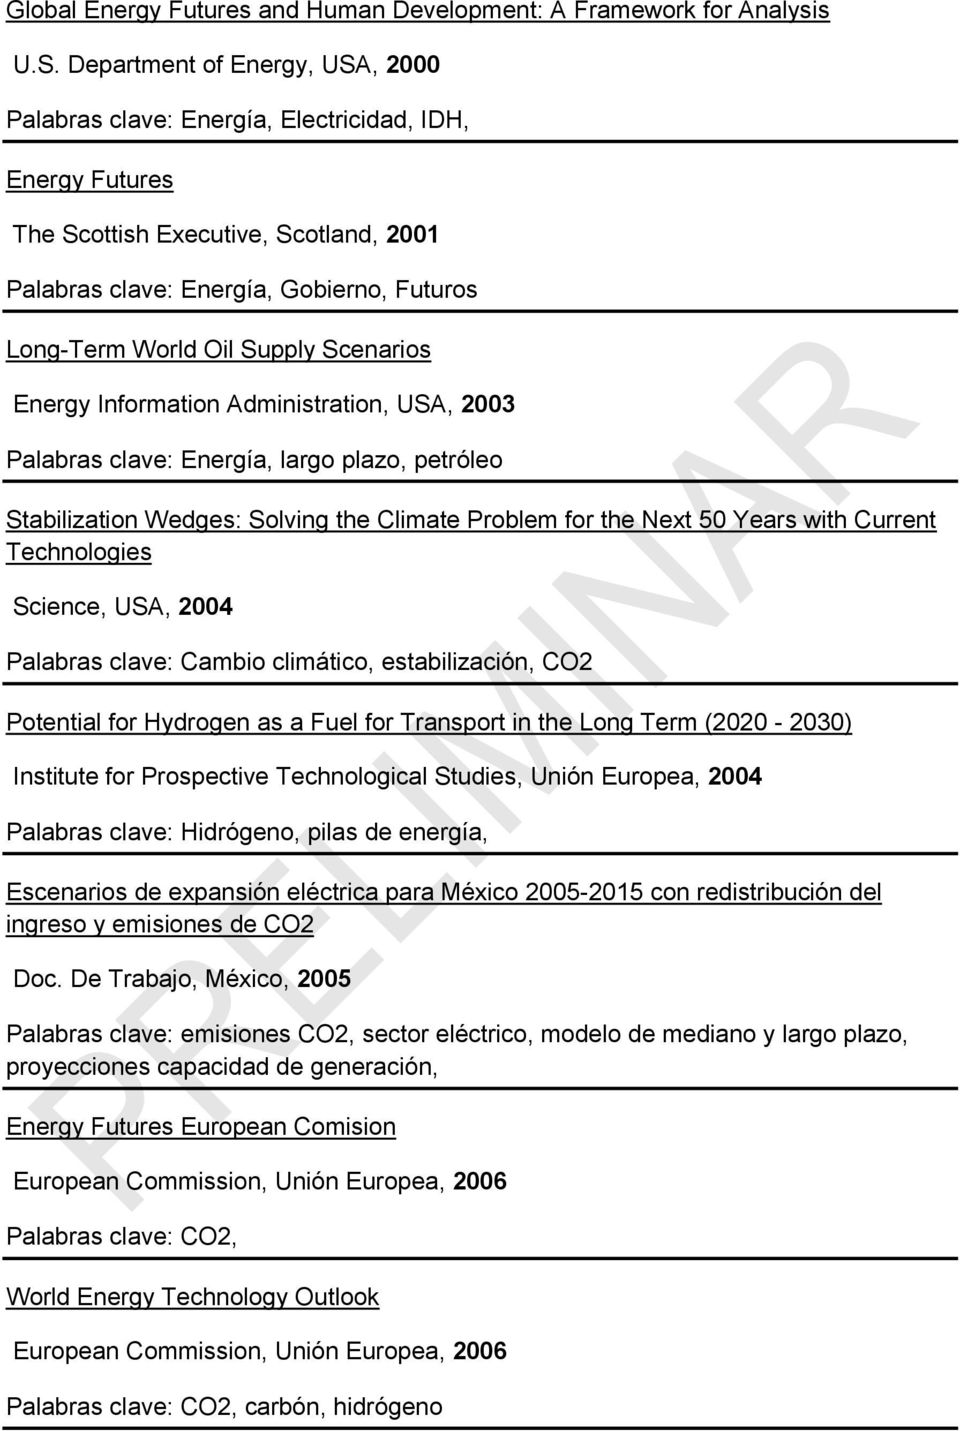 Scenarios Energy Information Administration, USA, 2003 Palabras clave: Energía, largo plazo, petróleo Stabilization Wedges: Solving the Climate Problem for the Next 50 Years with Current Technologies